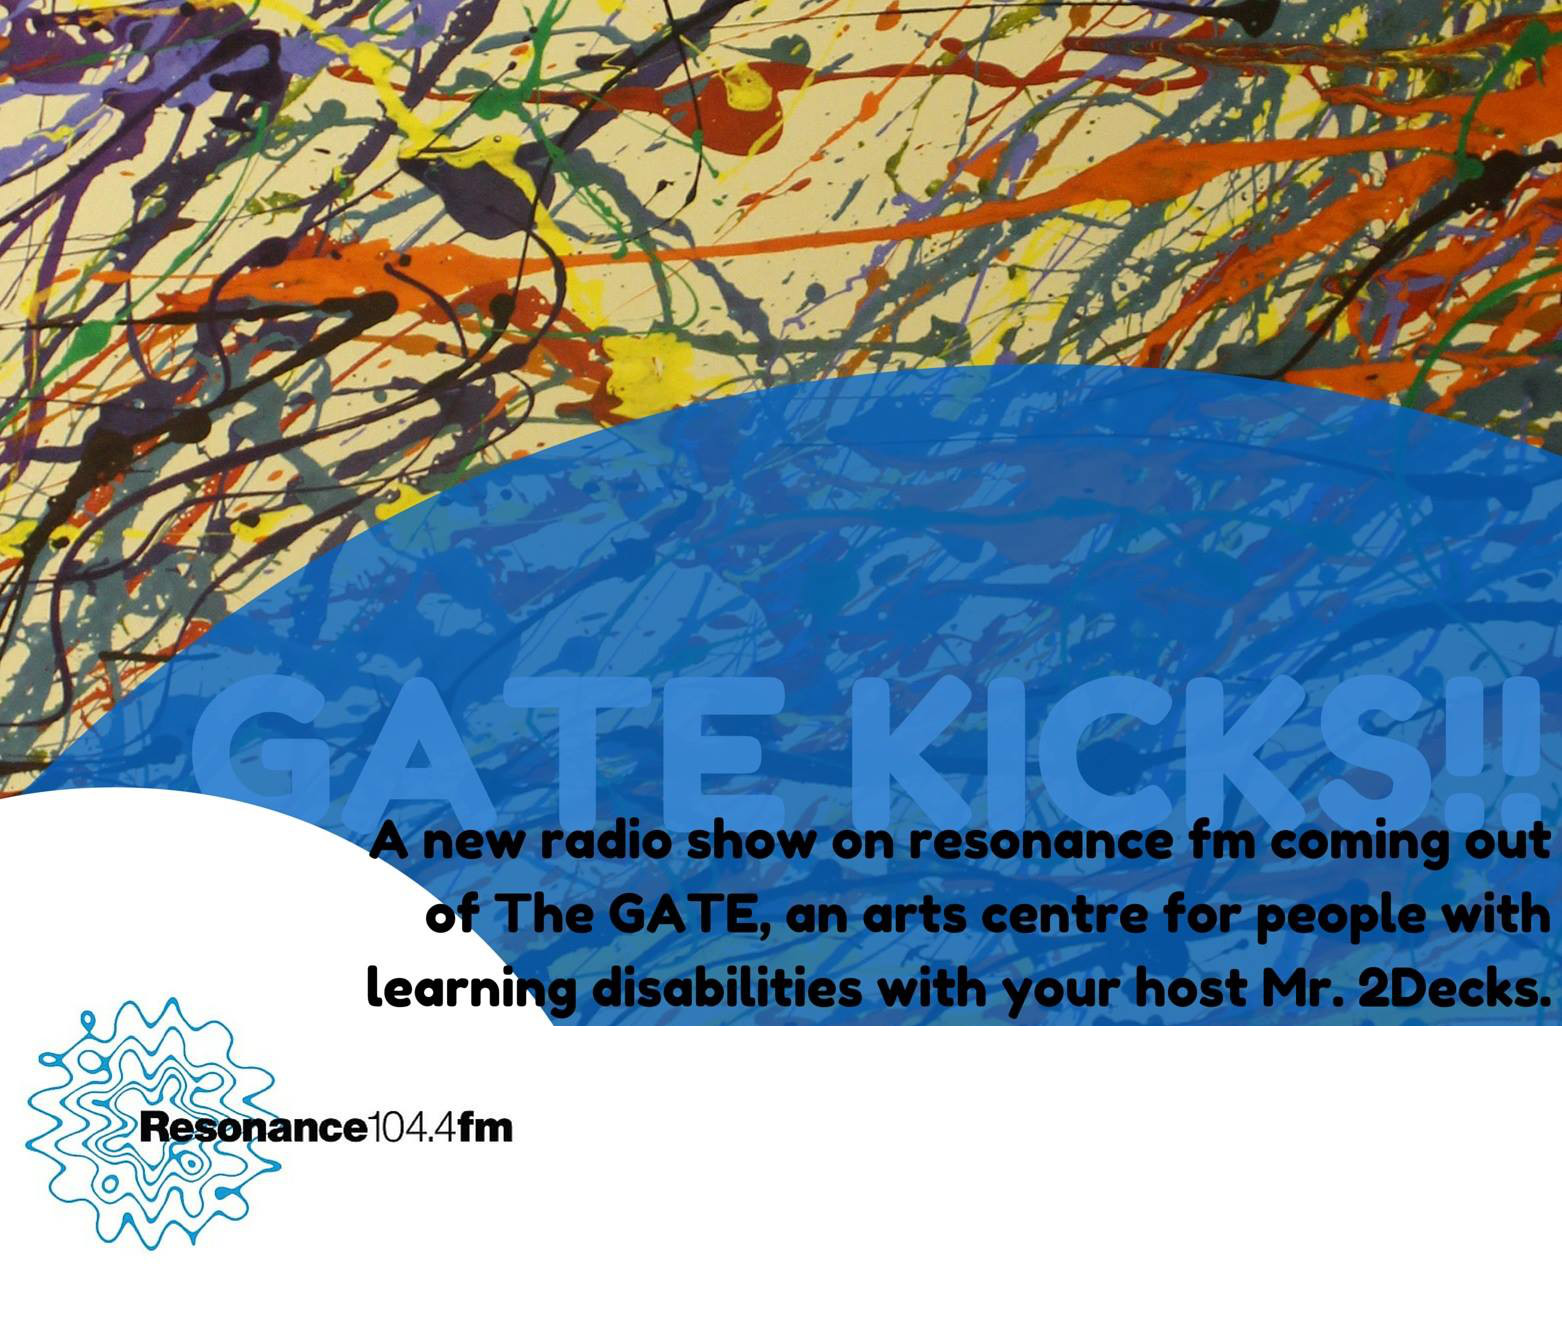 GATE KICKS!! RADIO SHOW